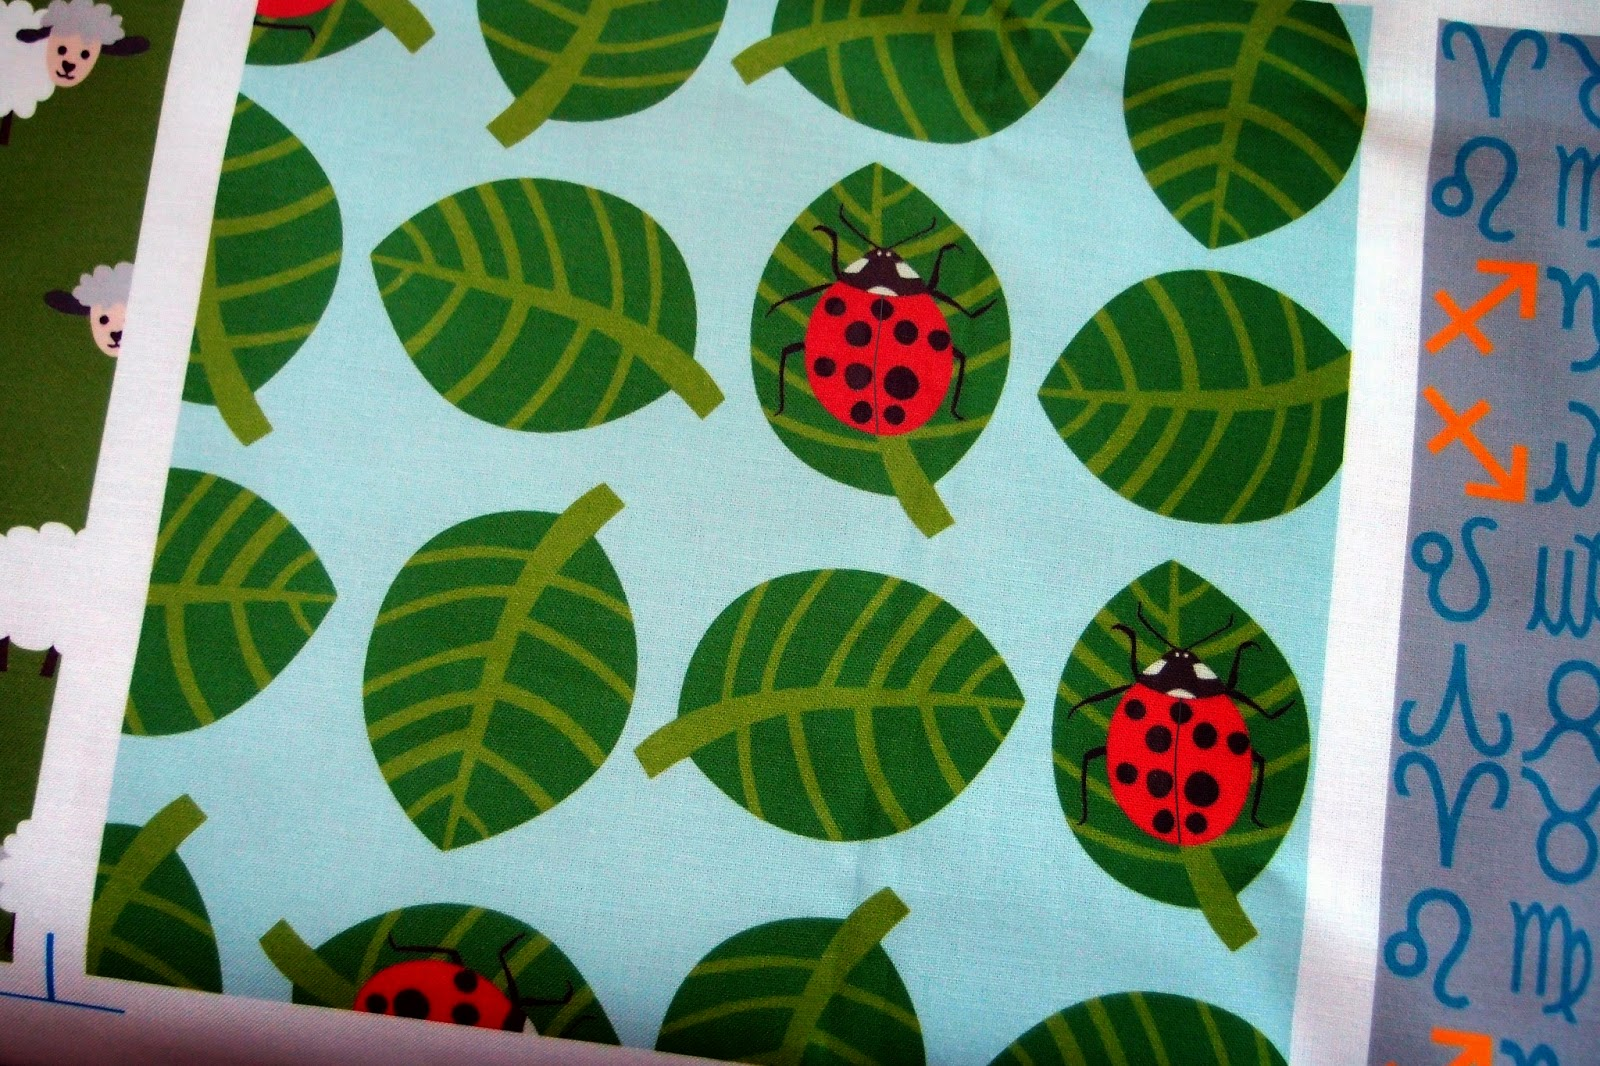 lady bugs on green leaves